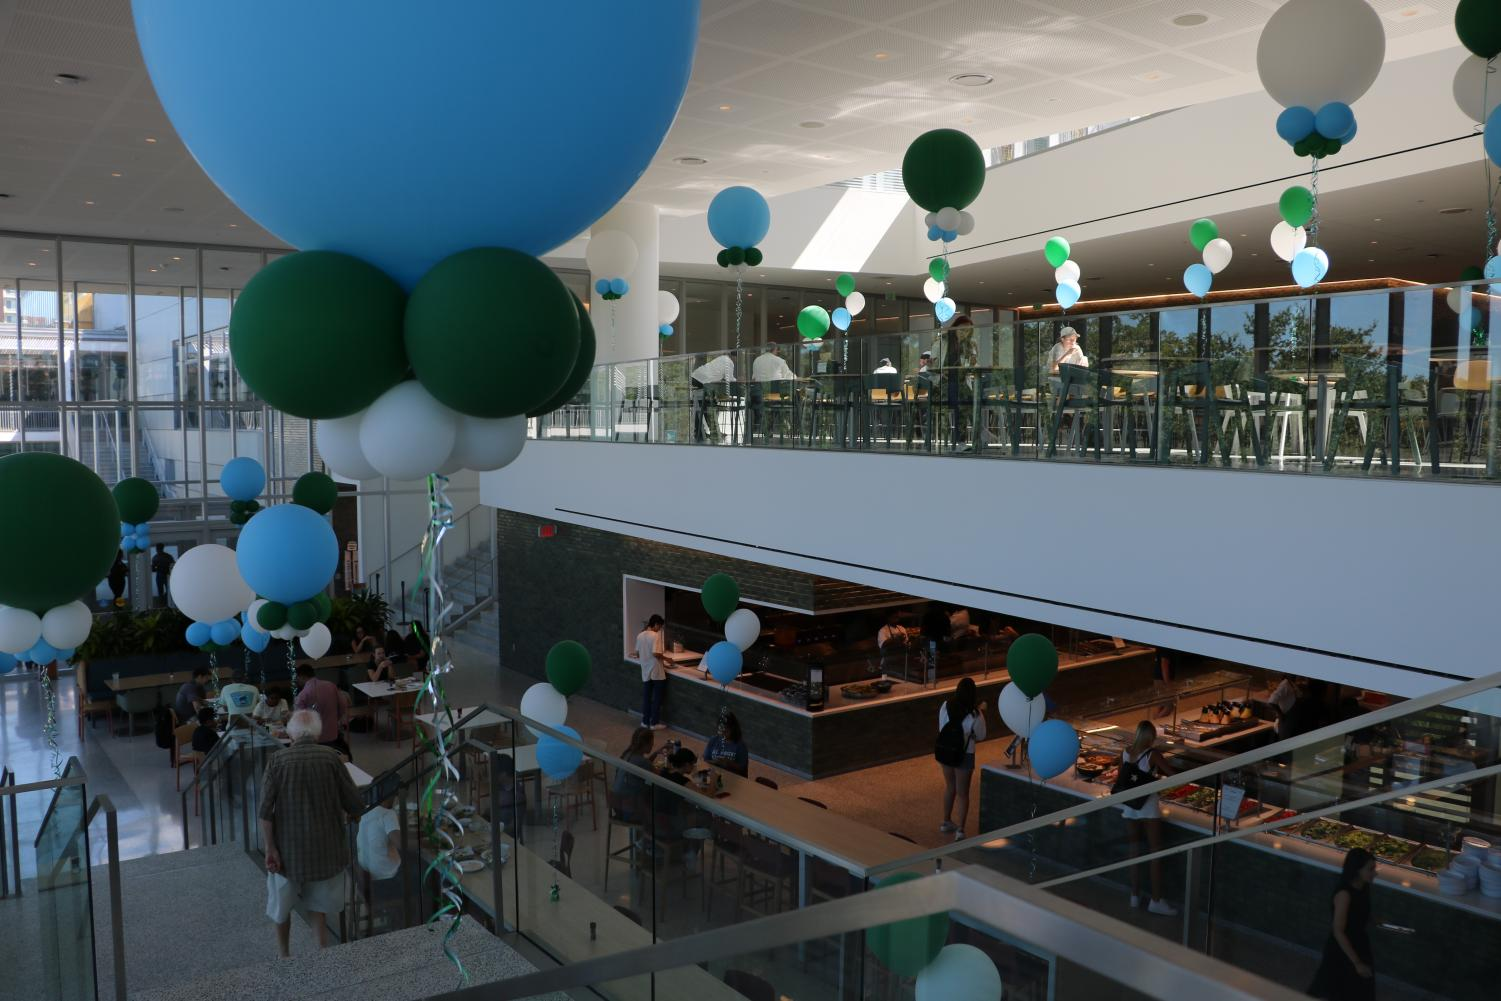 The Tulane Commons opening week. The Commons opened earlier this year and replaced the old dining hall Bruff Commons.